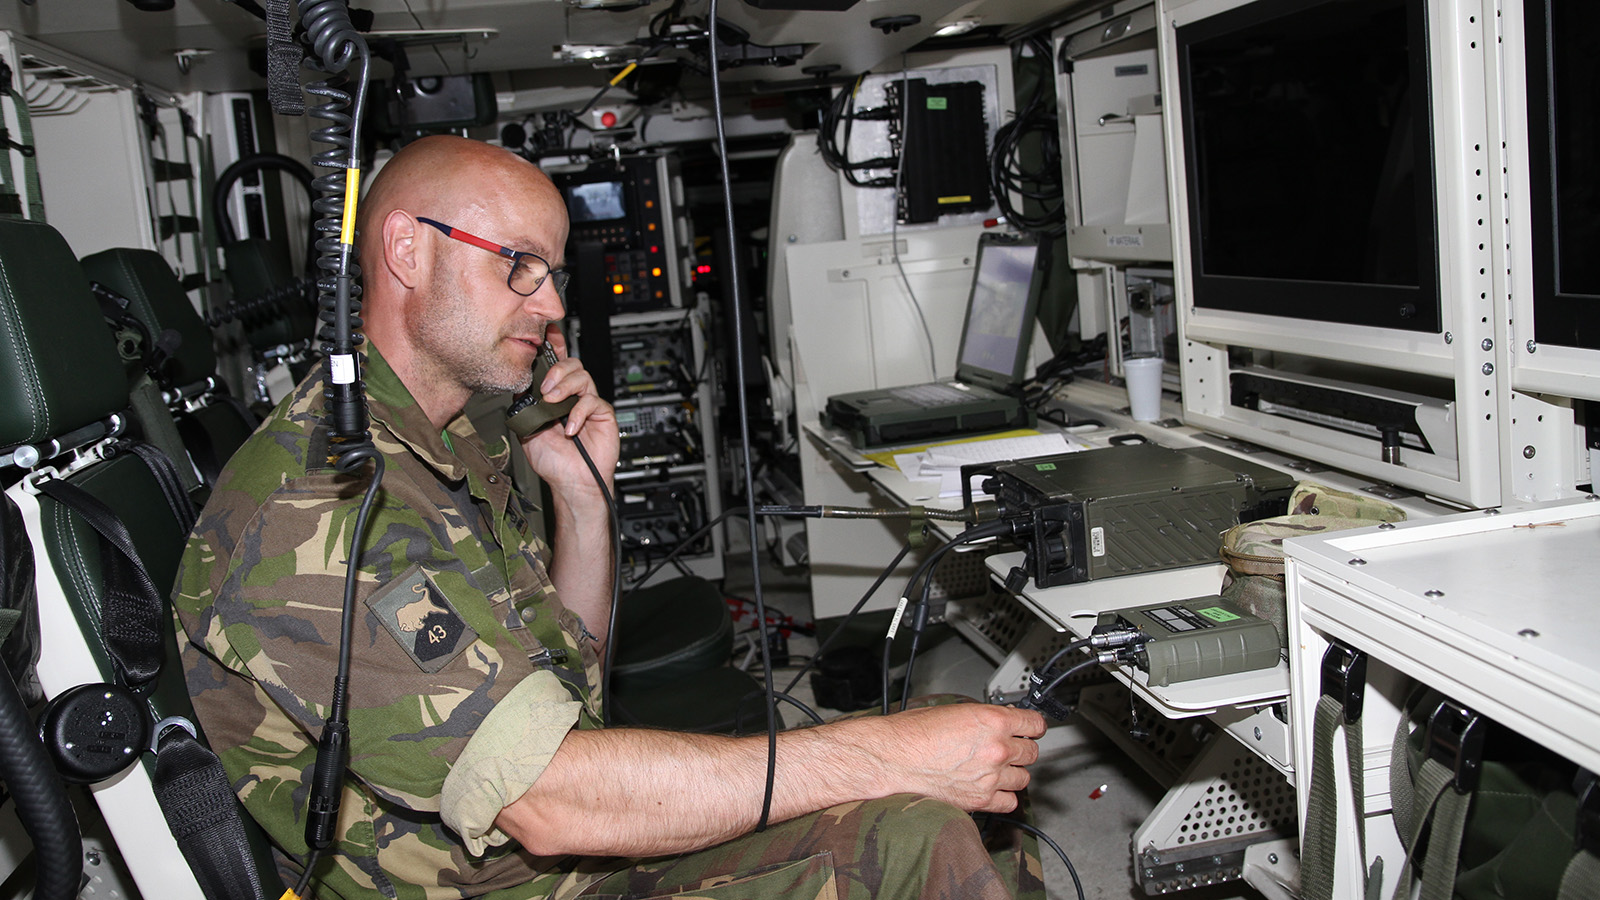 Improving NATO Interoperability Now to be Ready for the Future